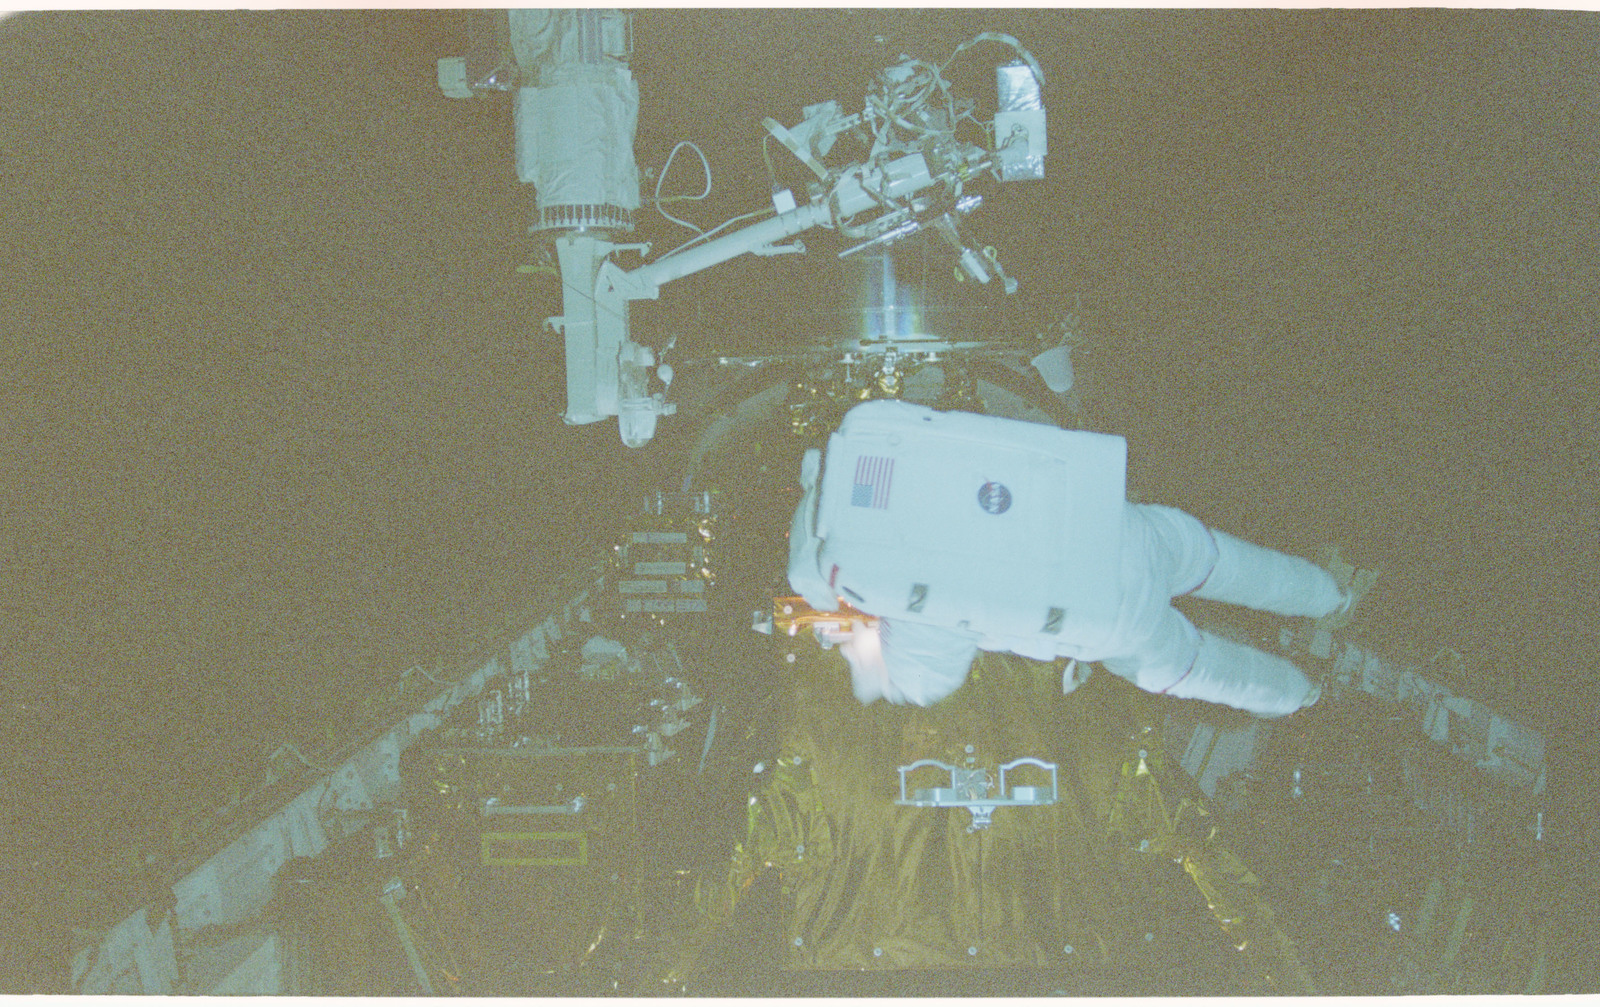 STS082-363-011 - STS-082 - EVA 5 on Flight Day 7 to service the Hubble Space Telescope